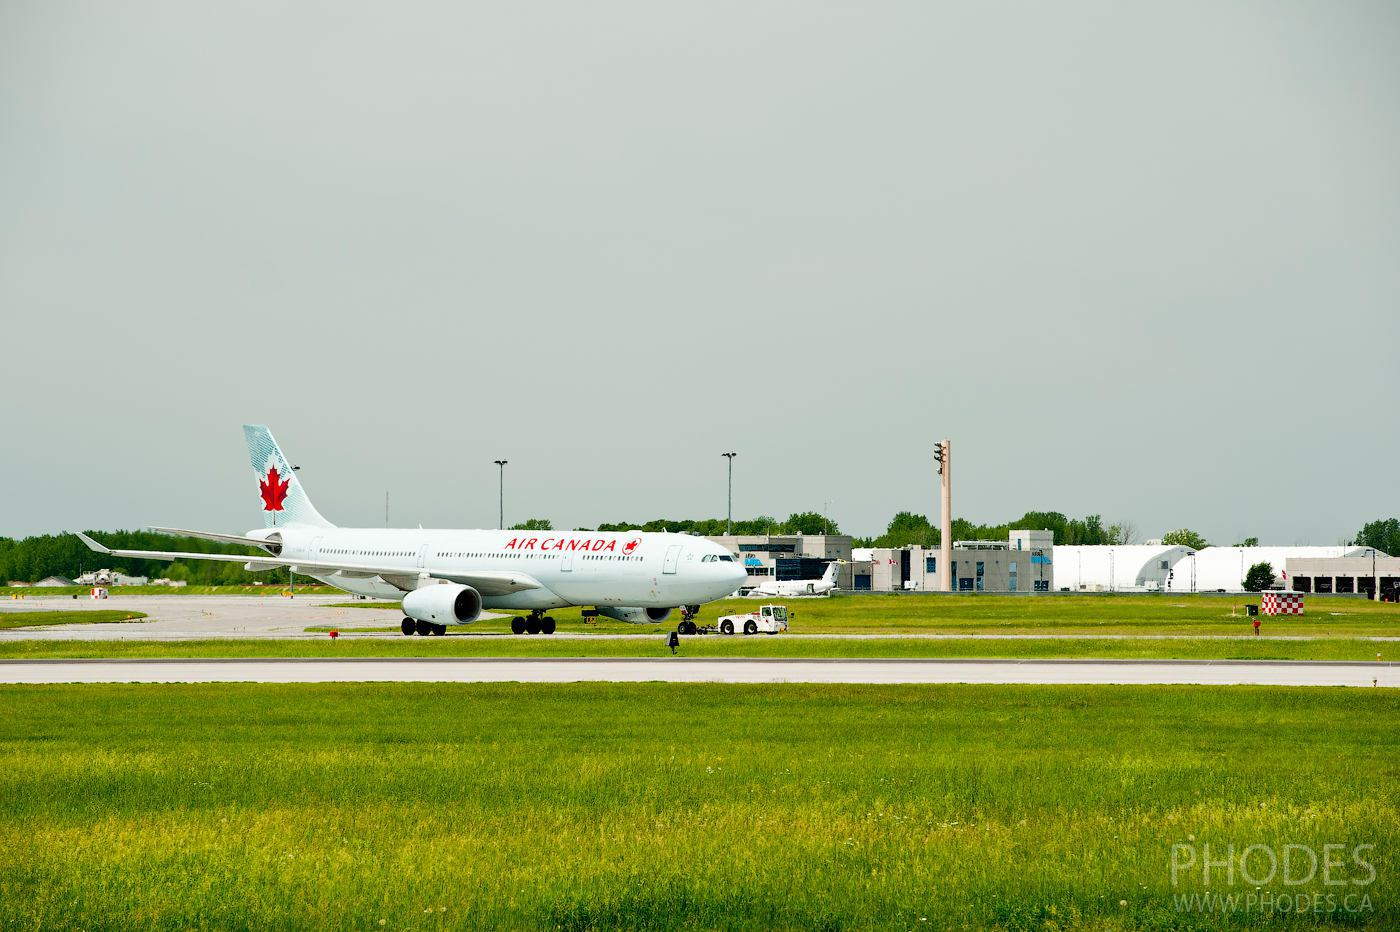 Air Canada plane before taking off - Airport Montreal Trudeau